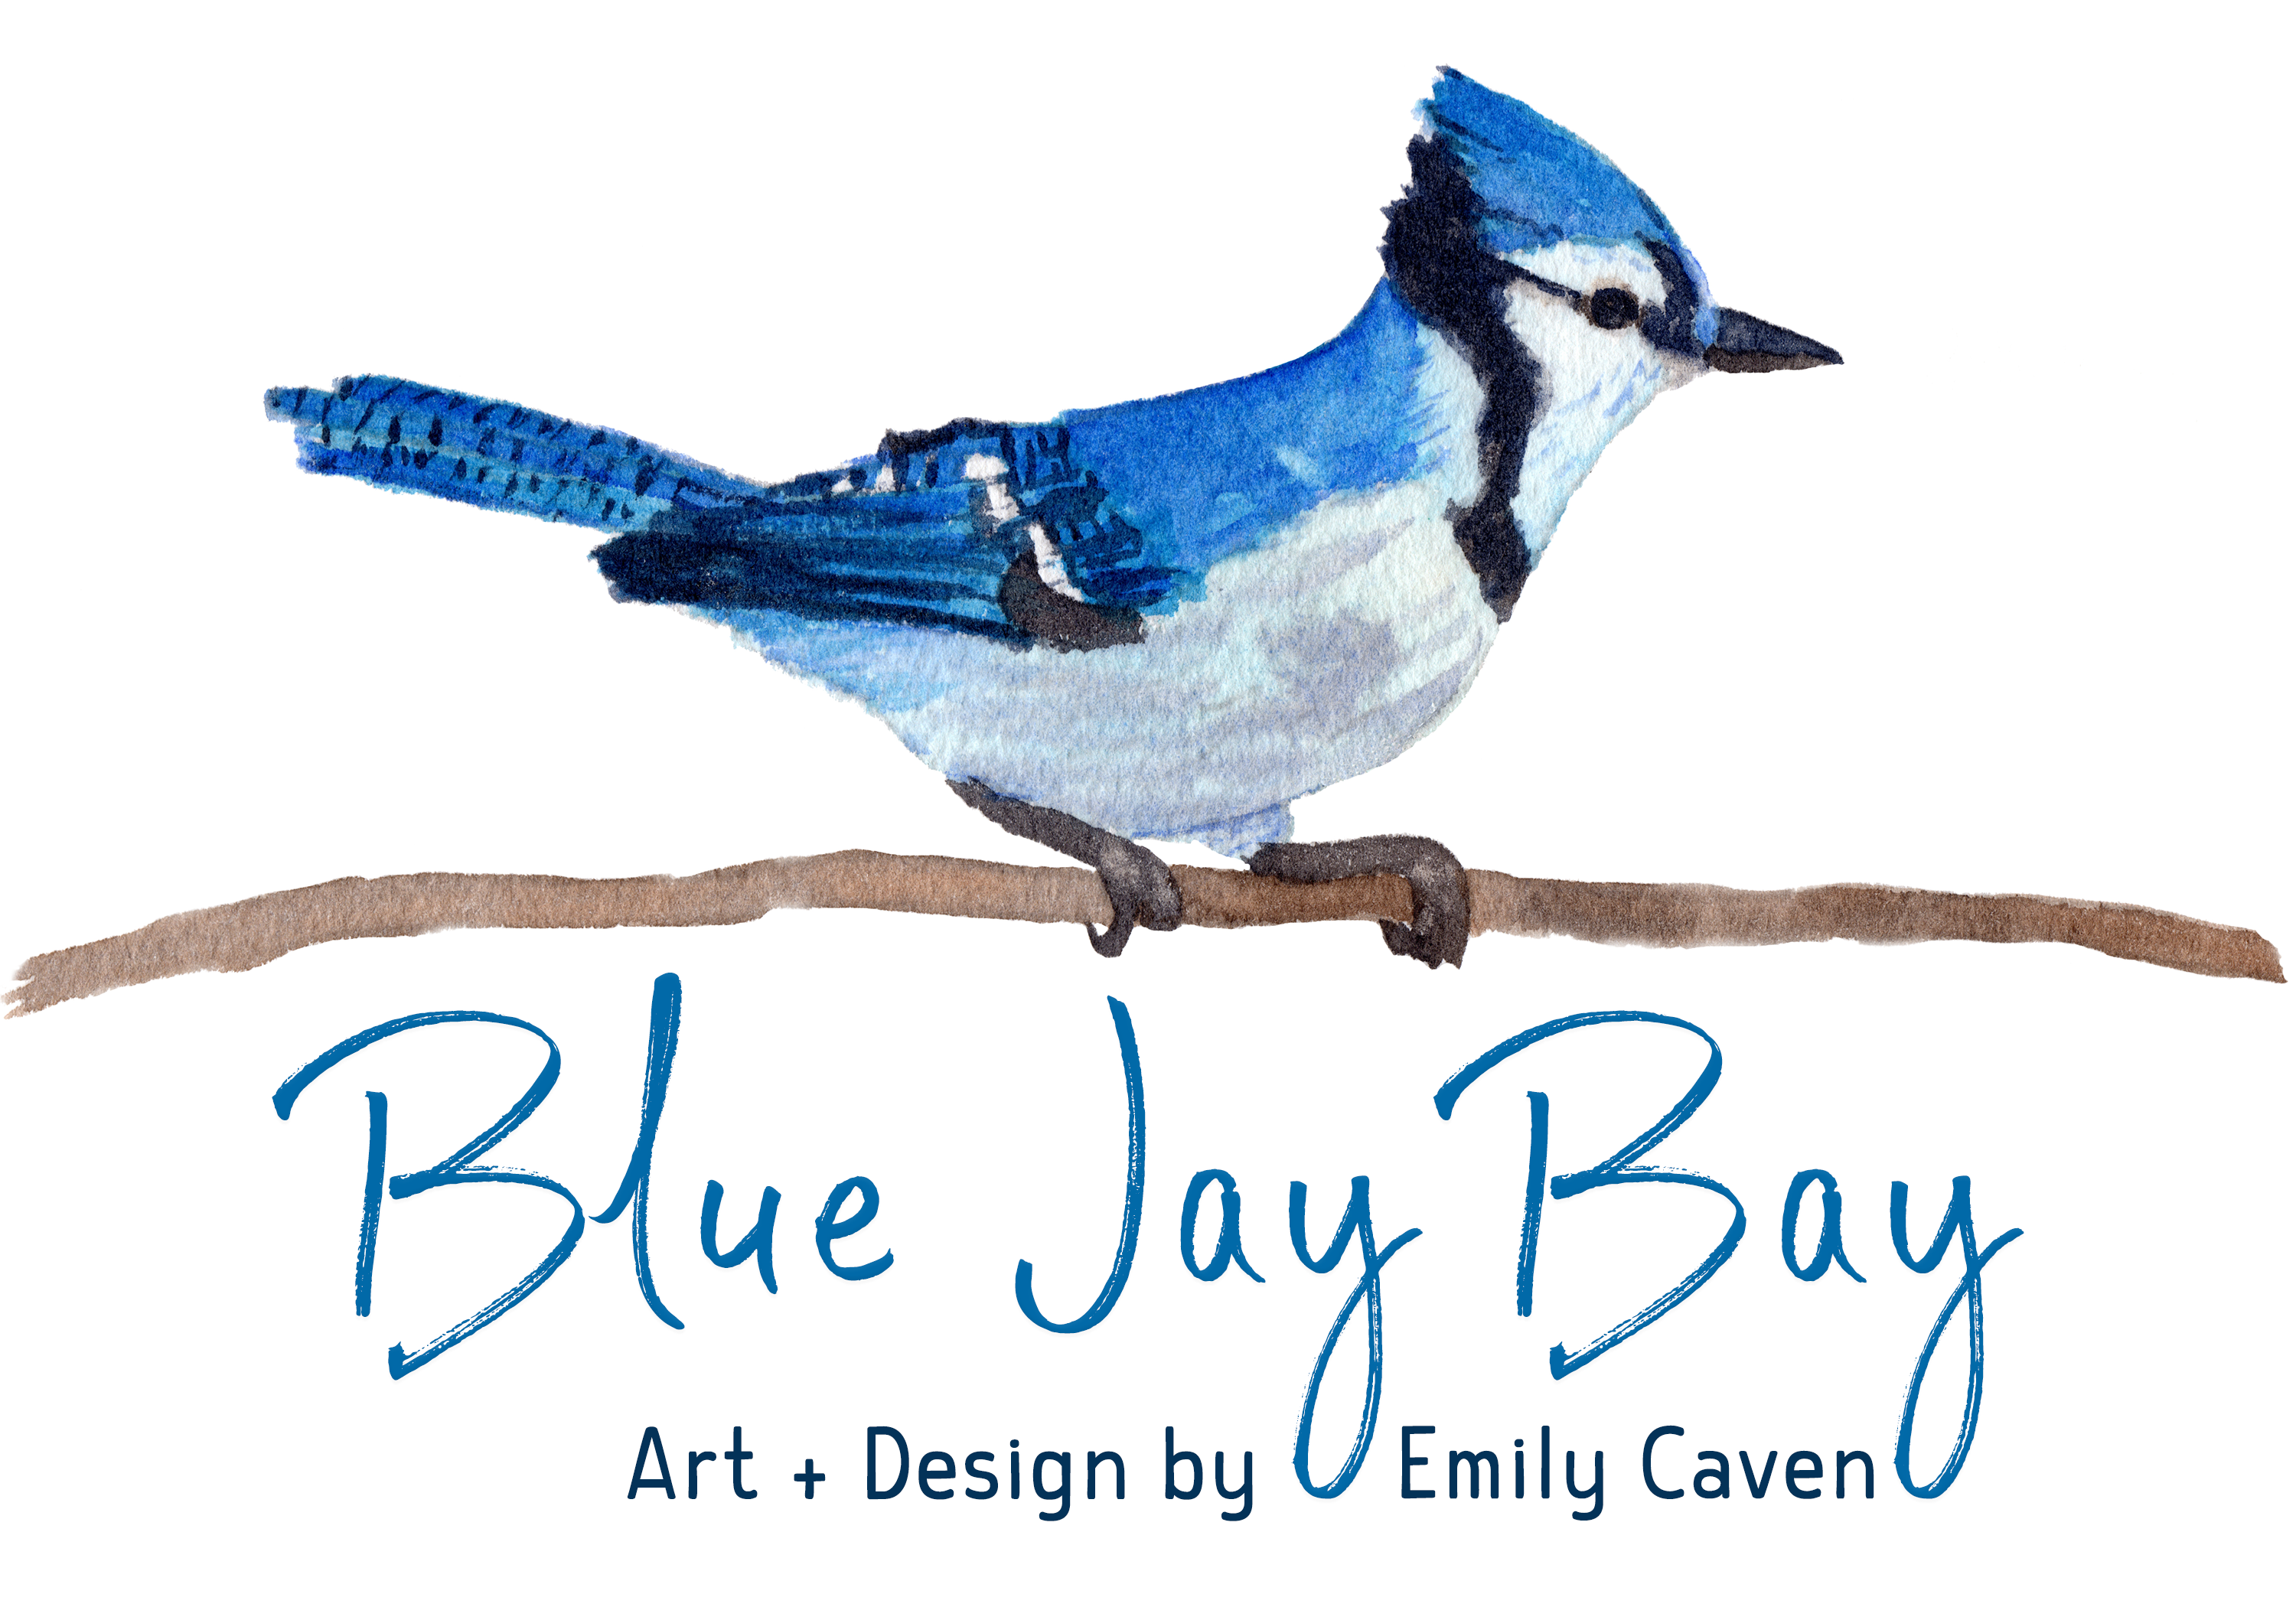 Blue Jay Bay ~ Art + Design by Emily Caven